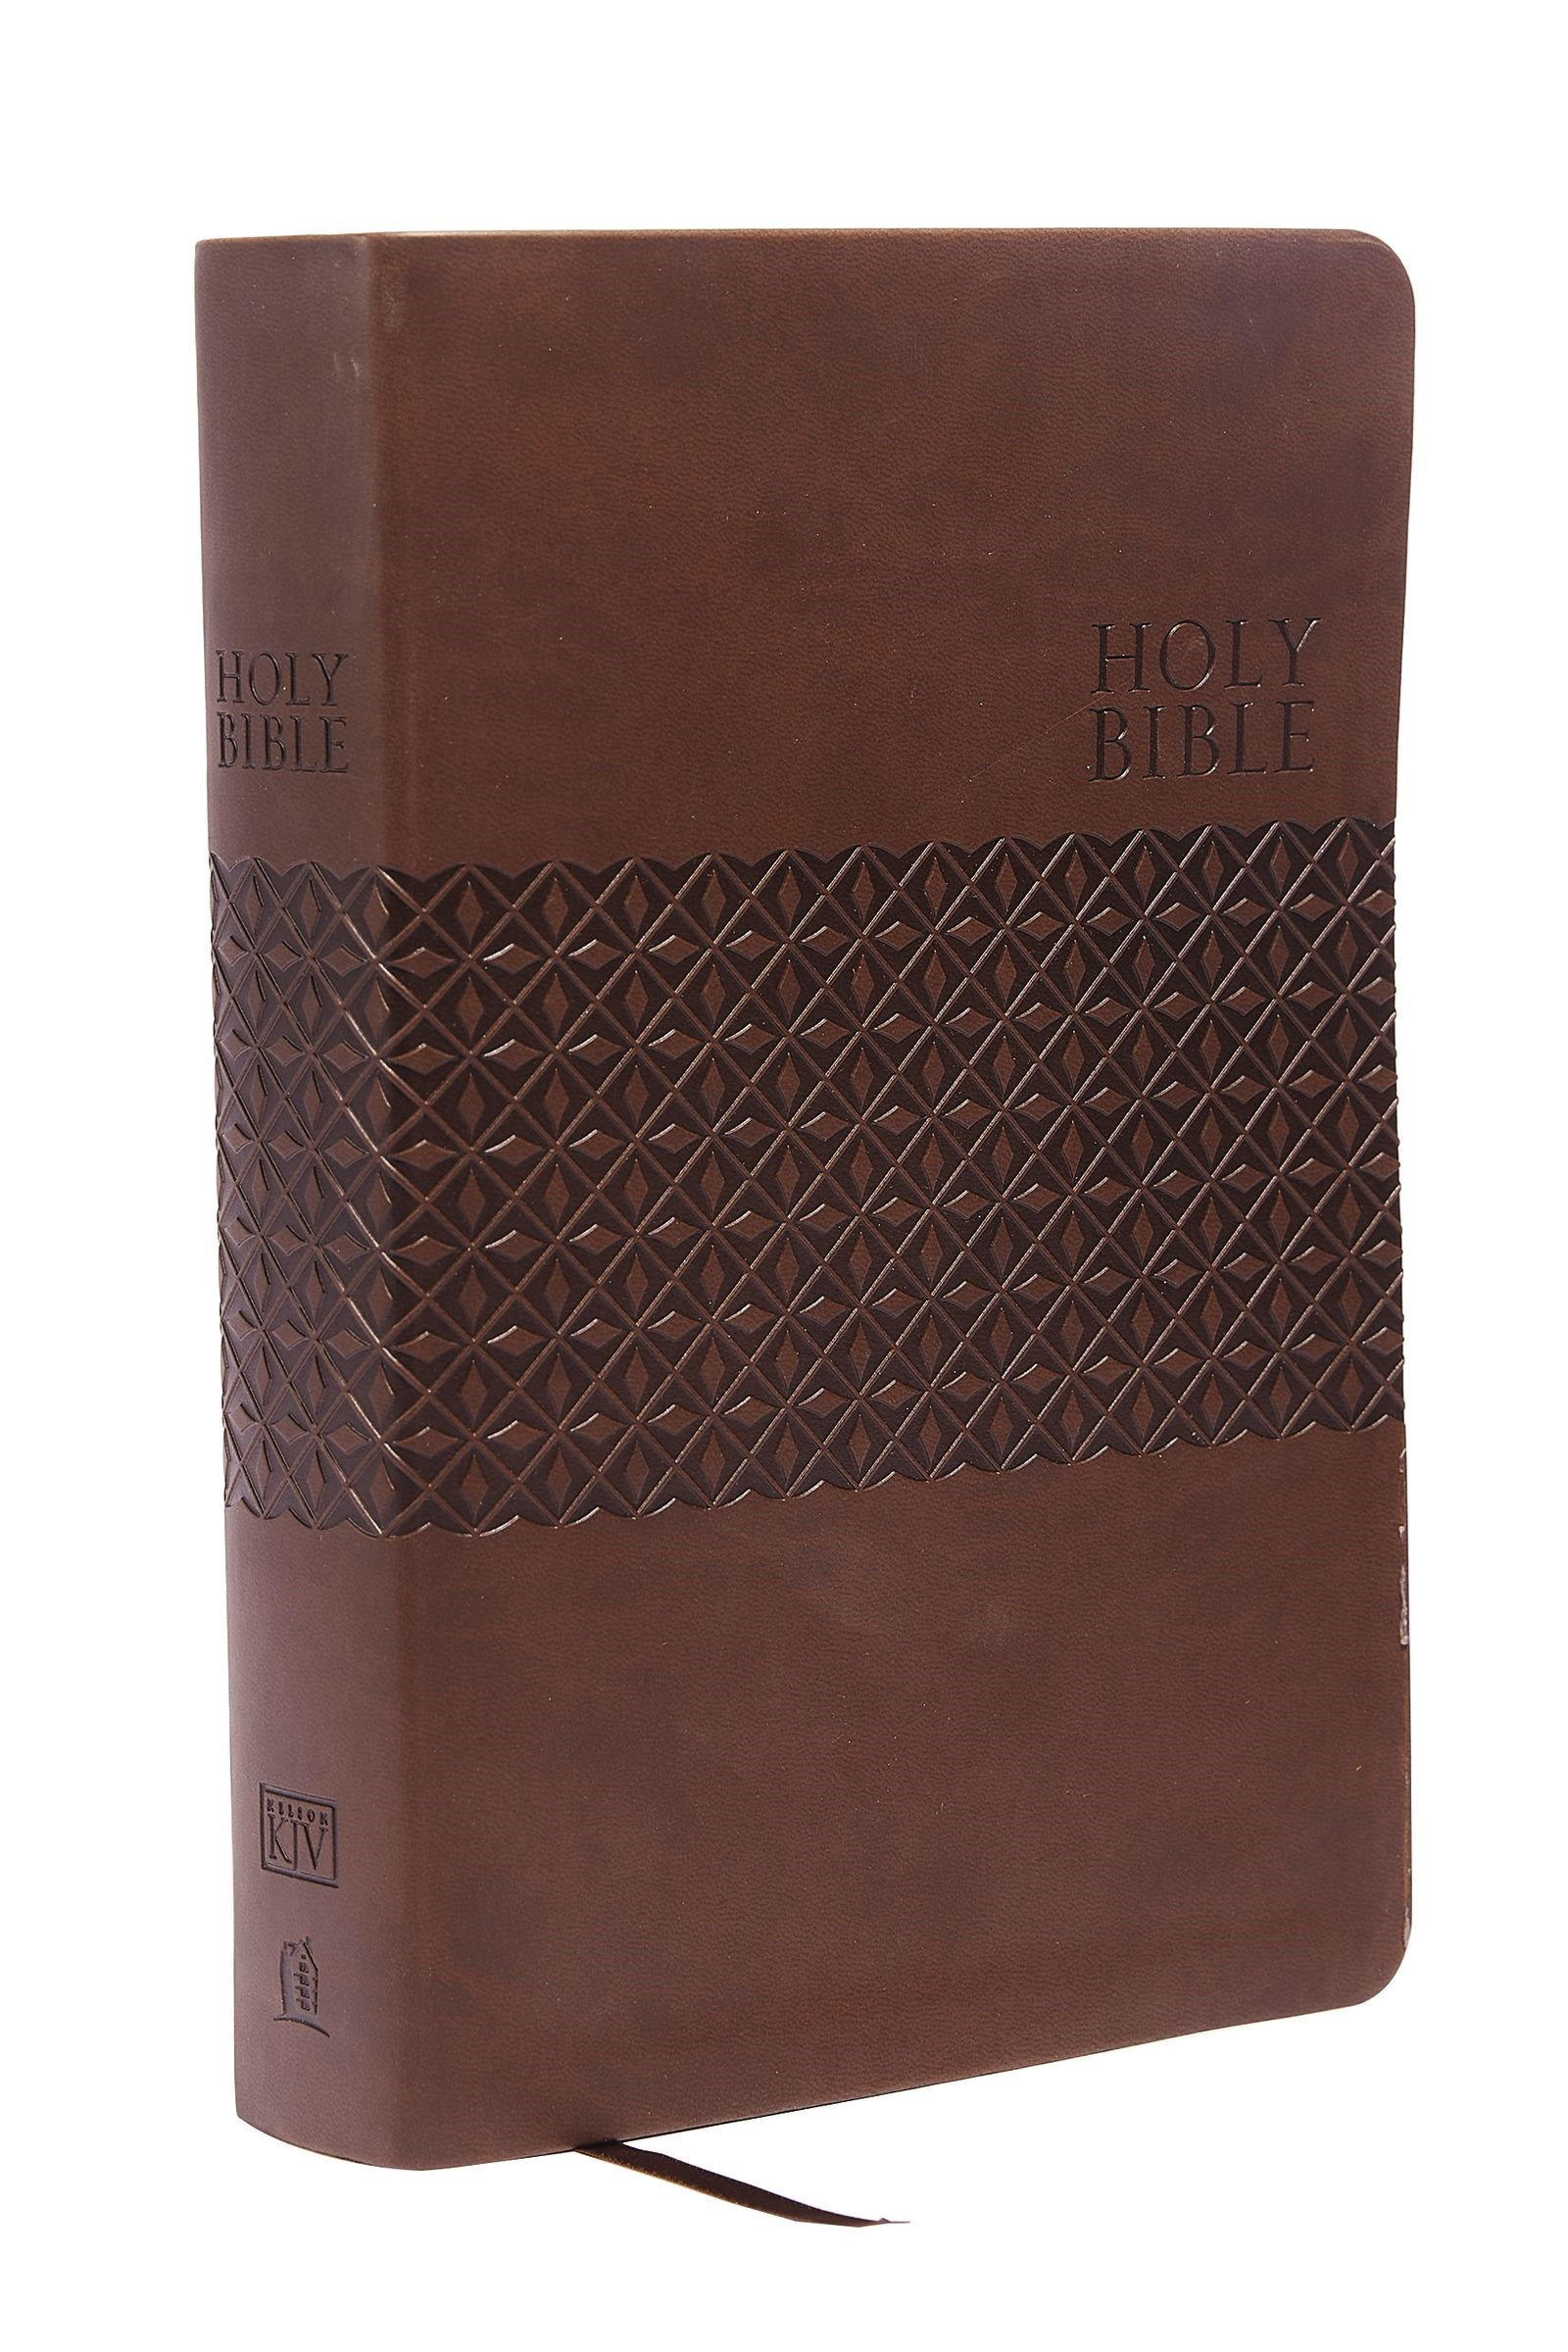 KJV King James Study Bible (Second Edition)-Earth Brown LeatherSoft